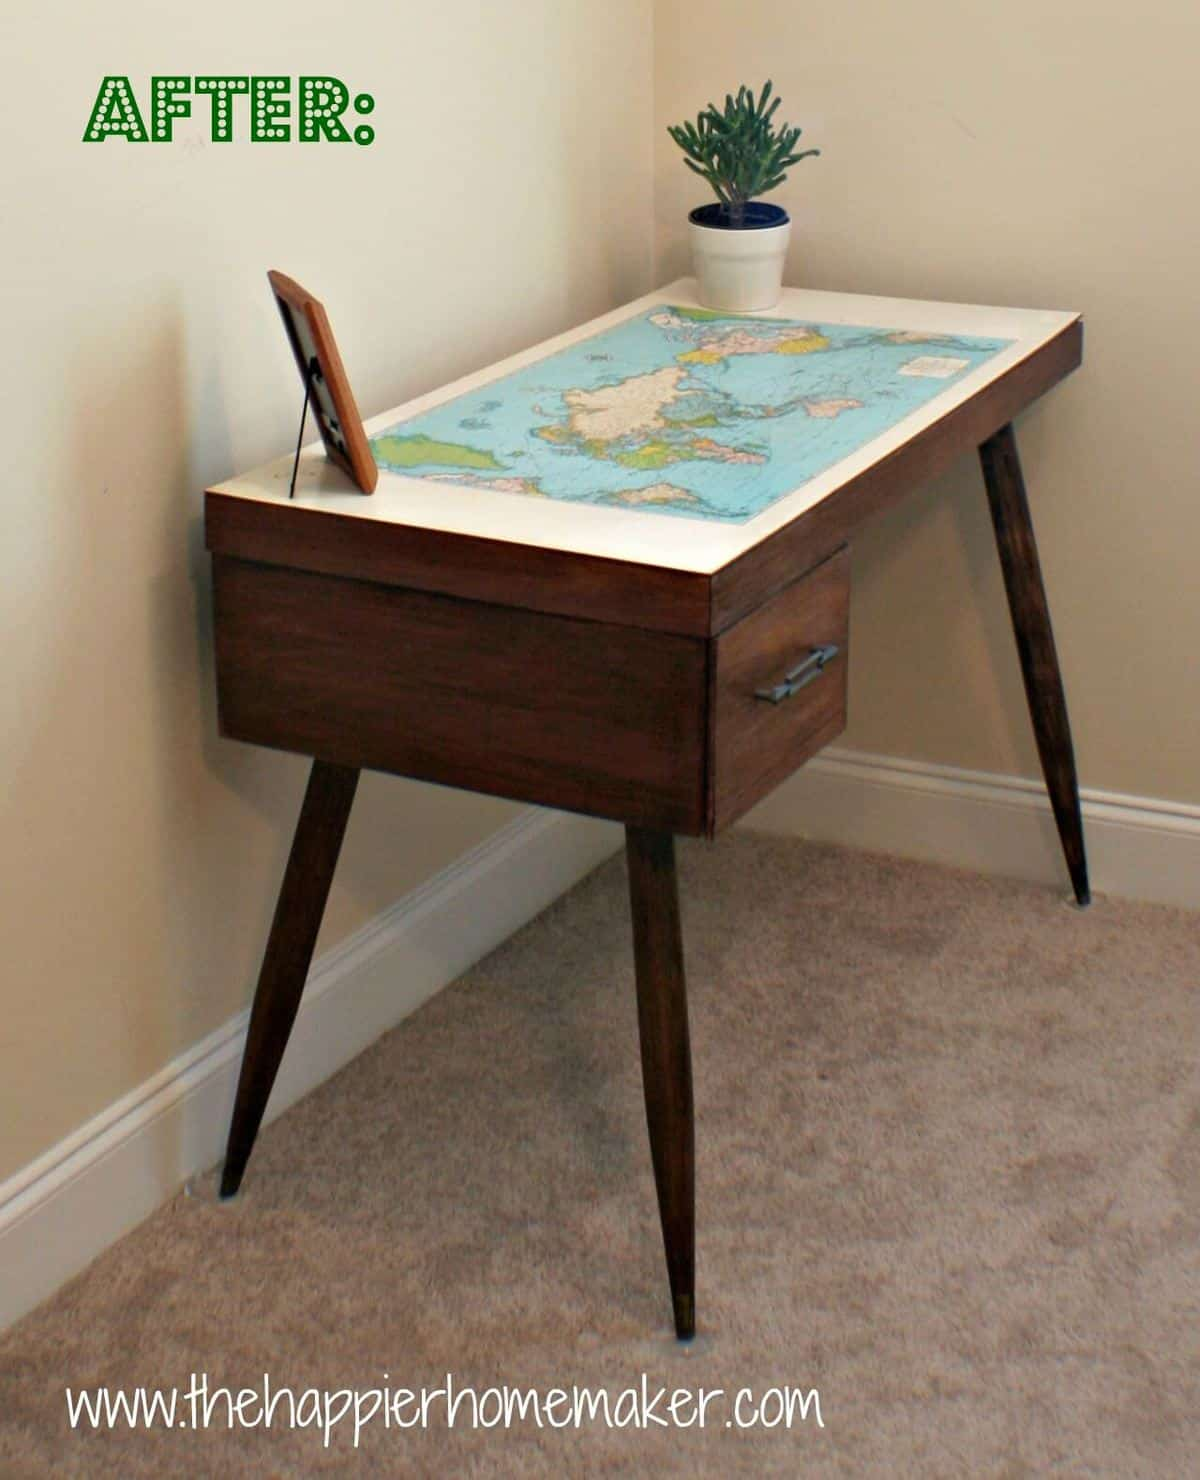 A wooden desk with a map table top with a picture frame and small pant on it